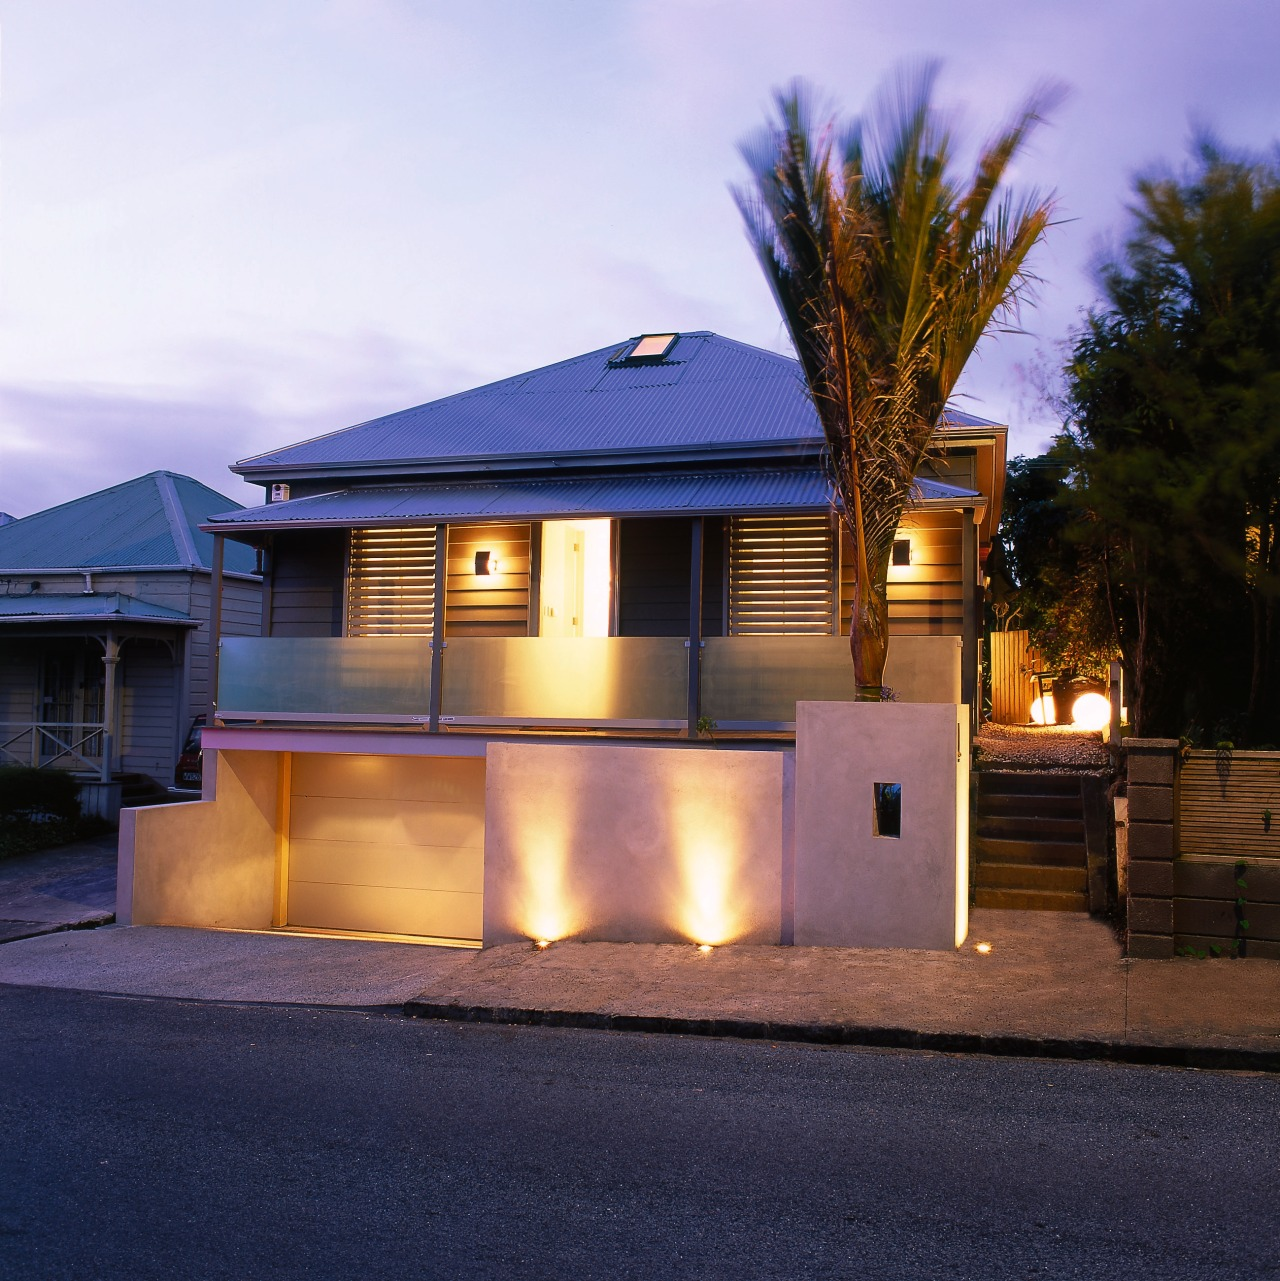 Exterior of house showing road frontage with lights architecture, building, cottage, elevation, estate, evening, facade, home, house, lighting, property, real estate, residential area, roof, siding, suburb, window, blue, purple